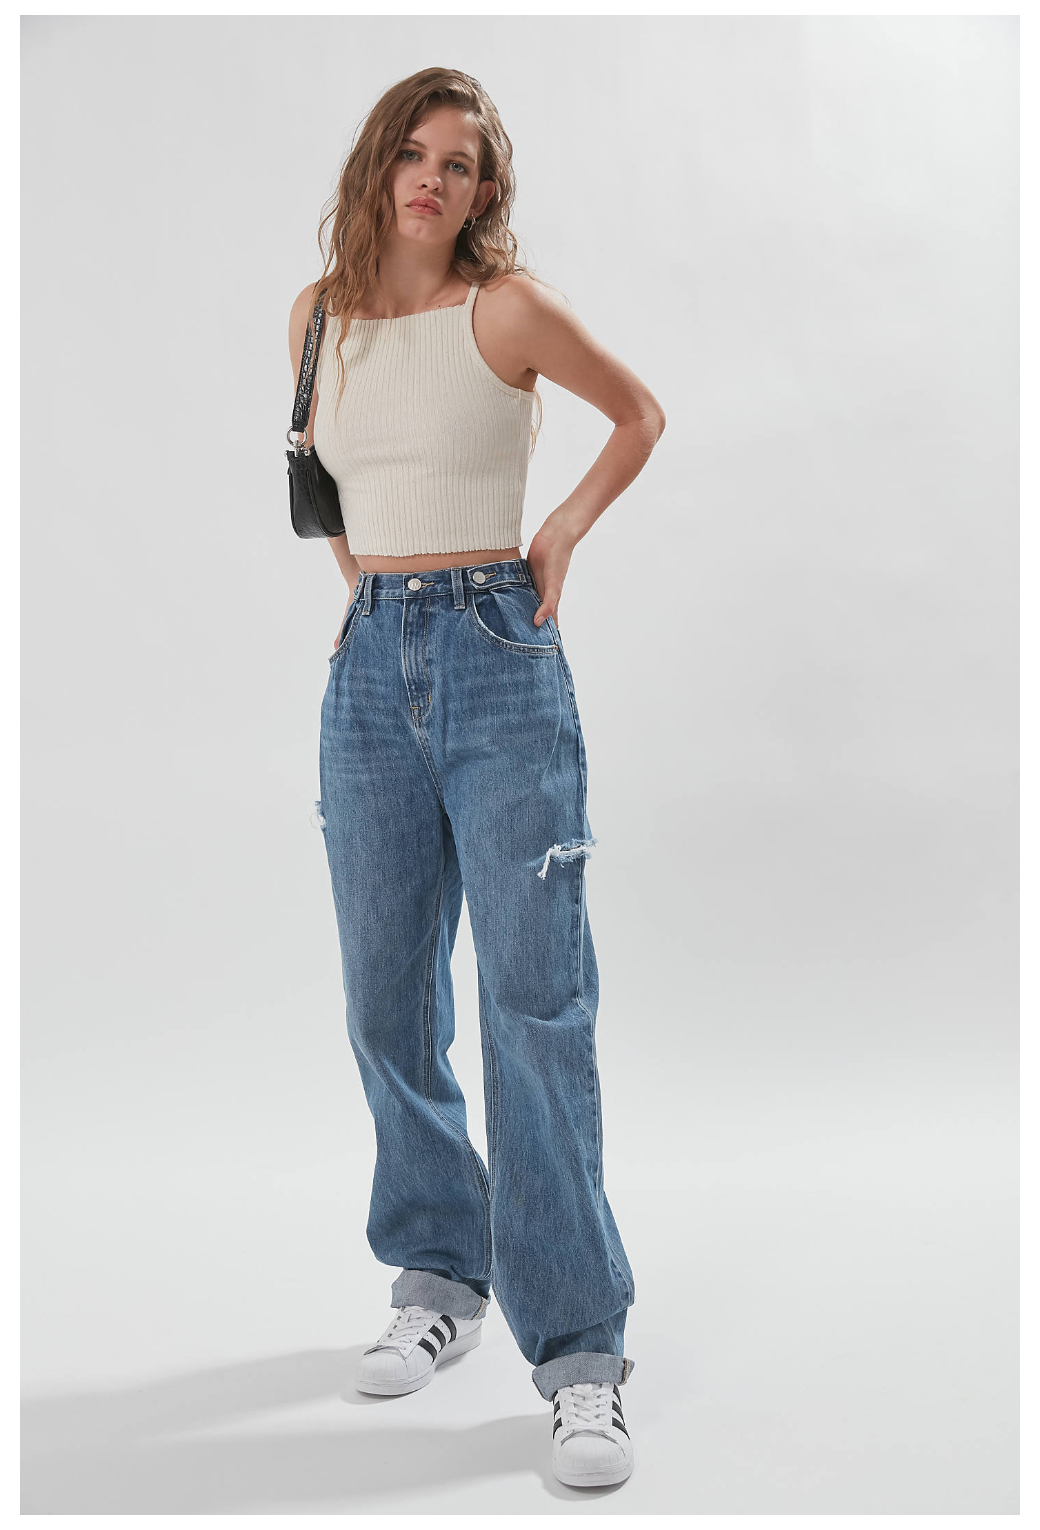 ZGY DENIM High-Waisted Baggy Jean